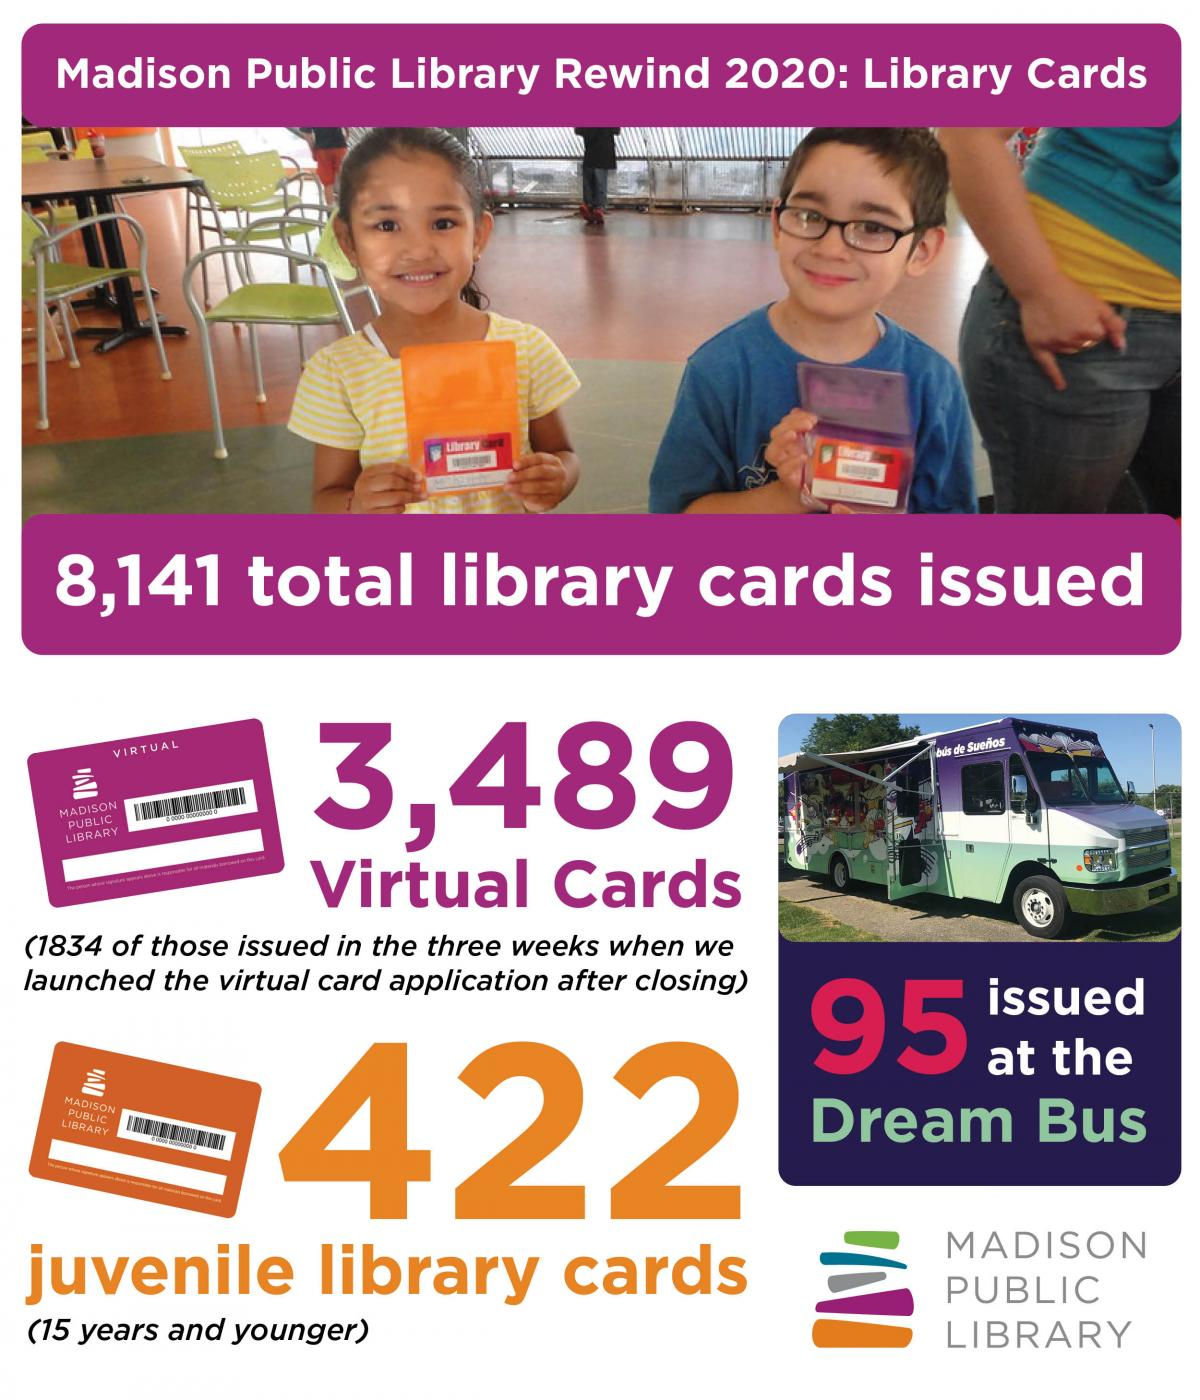 2020 Library Card data from Madison Public Library